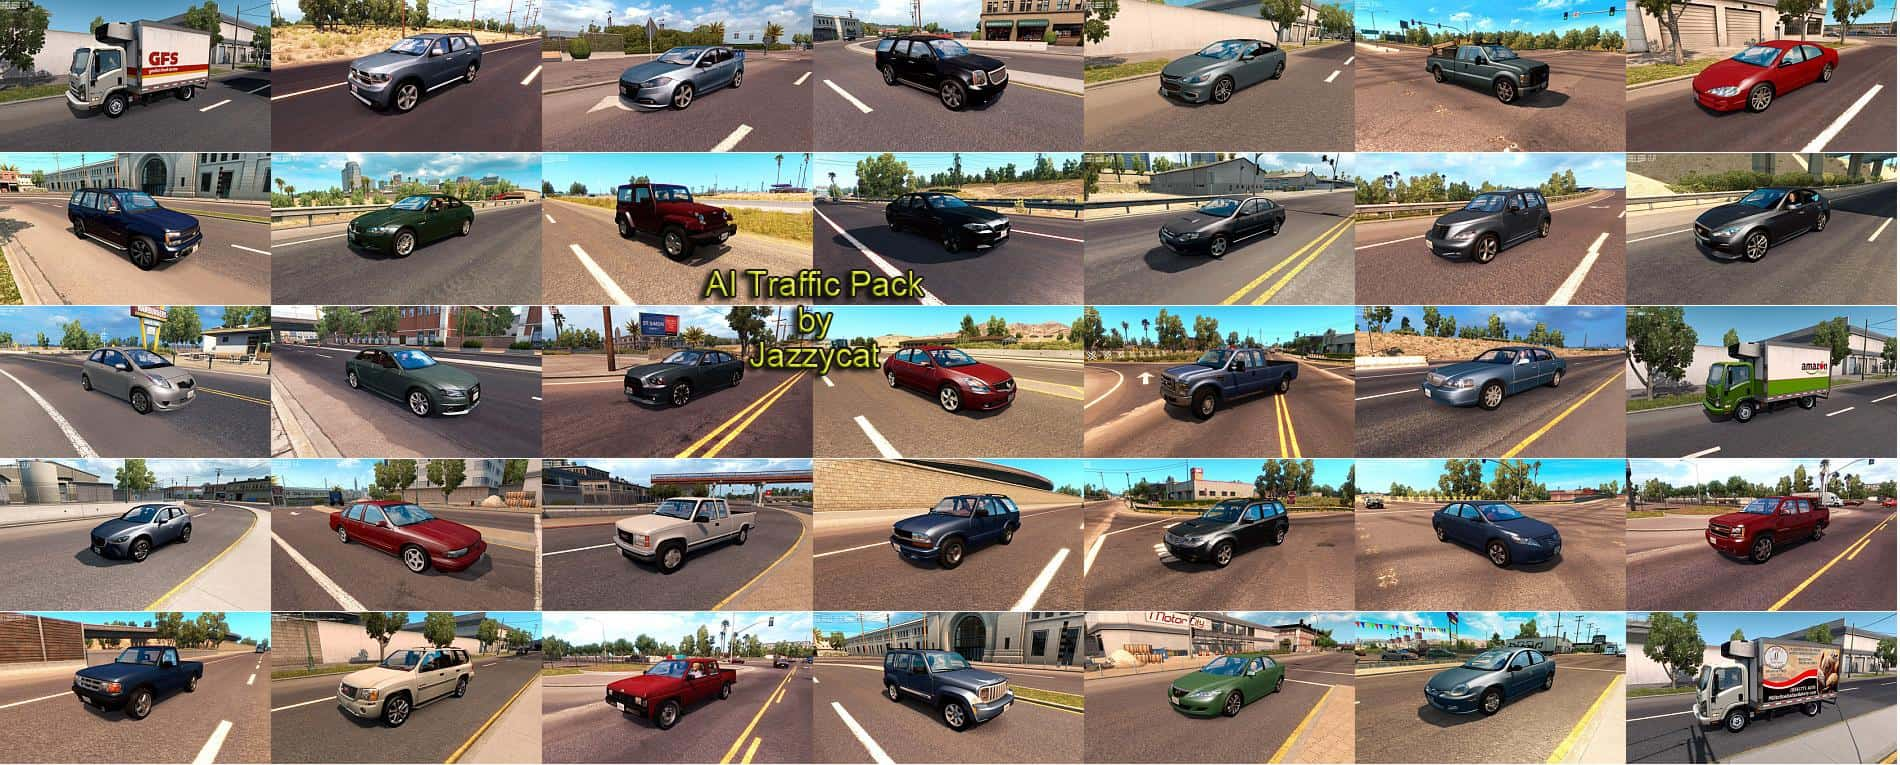 AI TRAFFIC PACK BY JAZZYCAT V4 0 MOD - American Truck